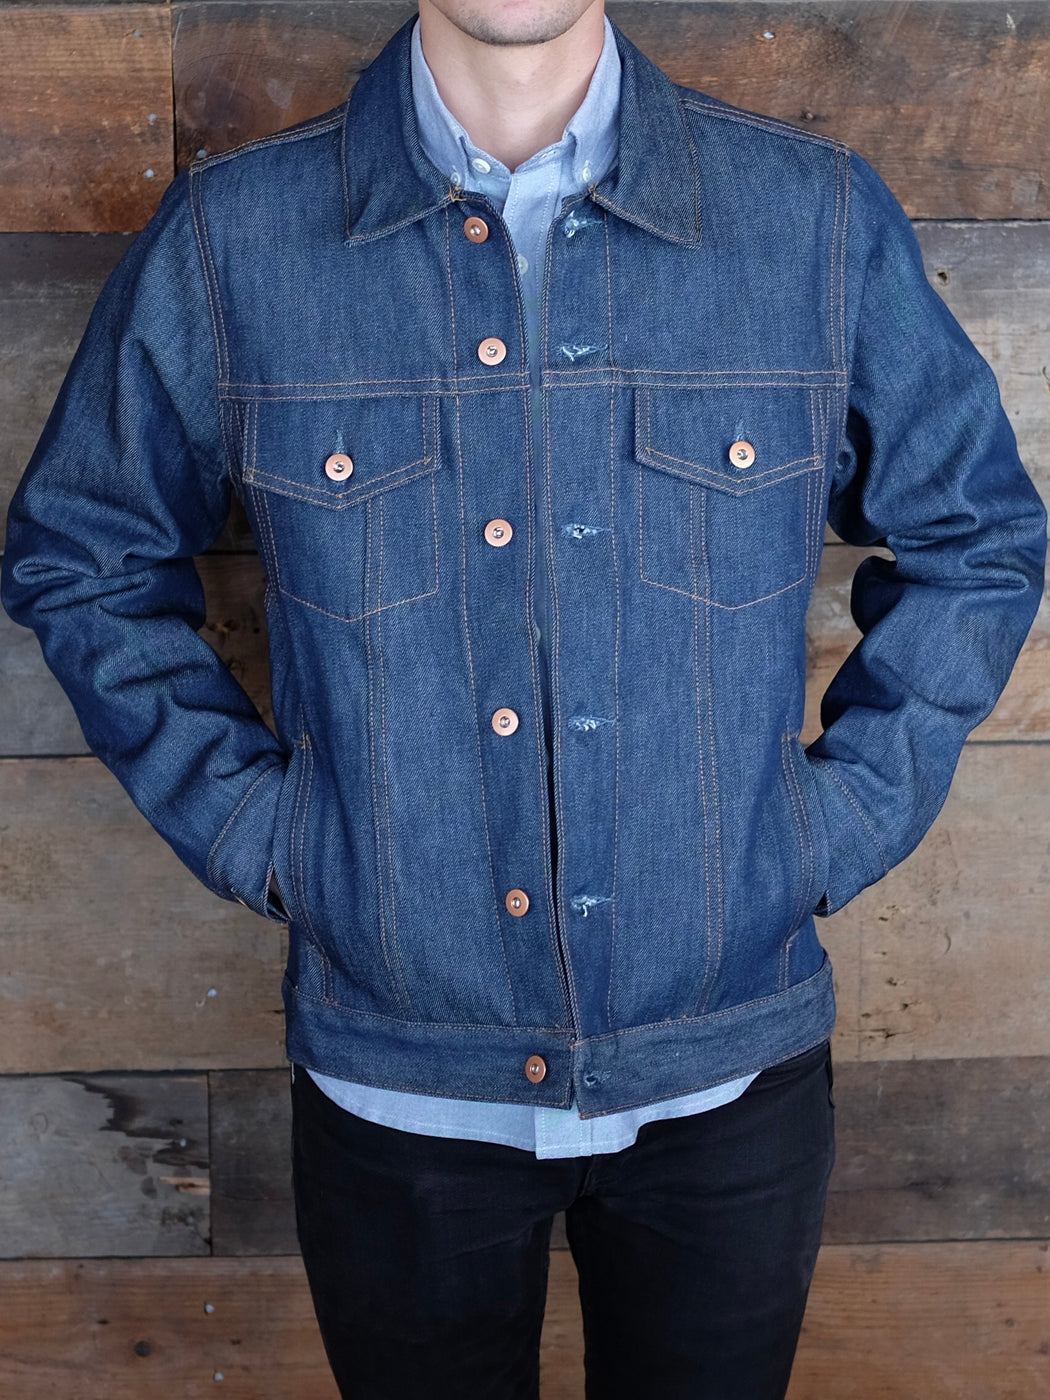 Jean Jacket, Tellason Stock, - Felding Co